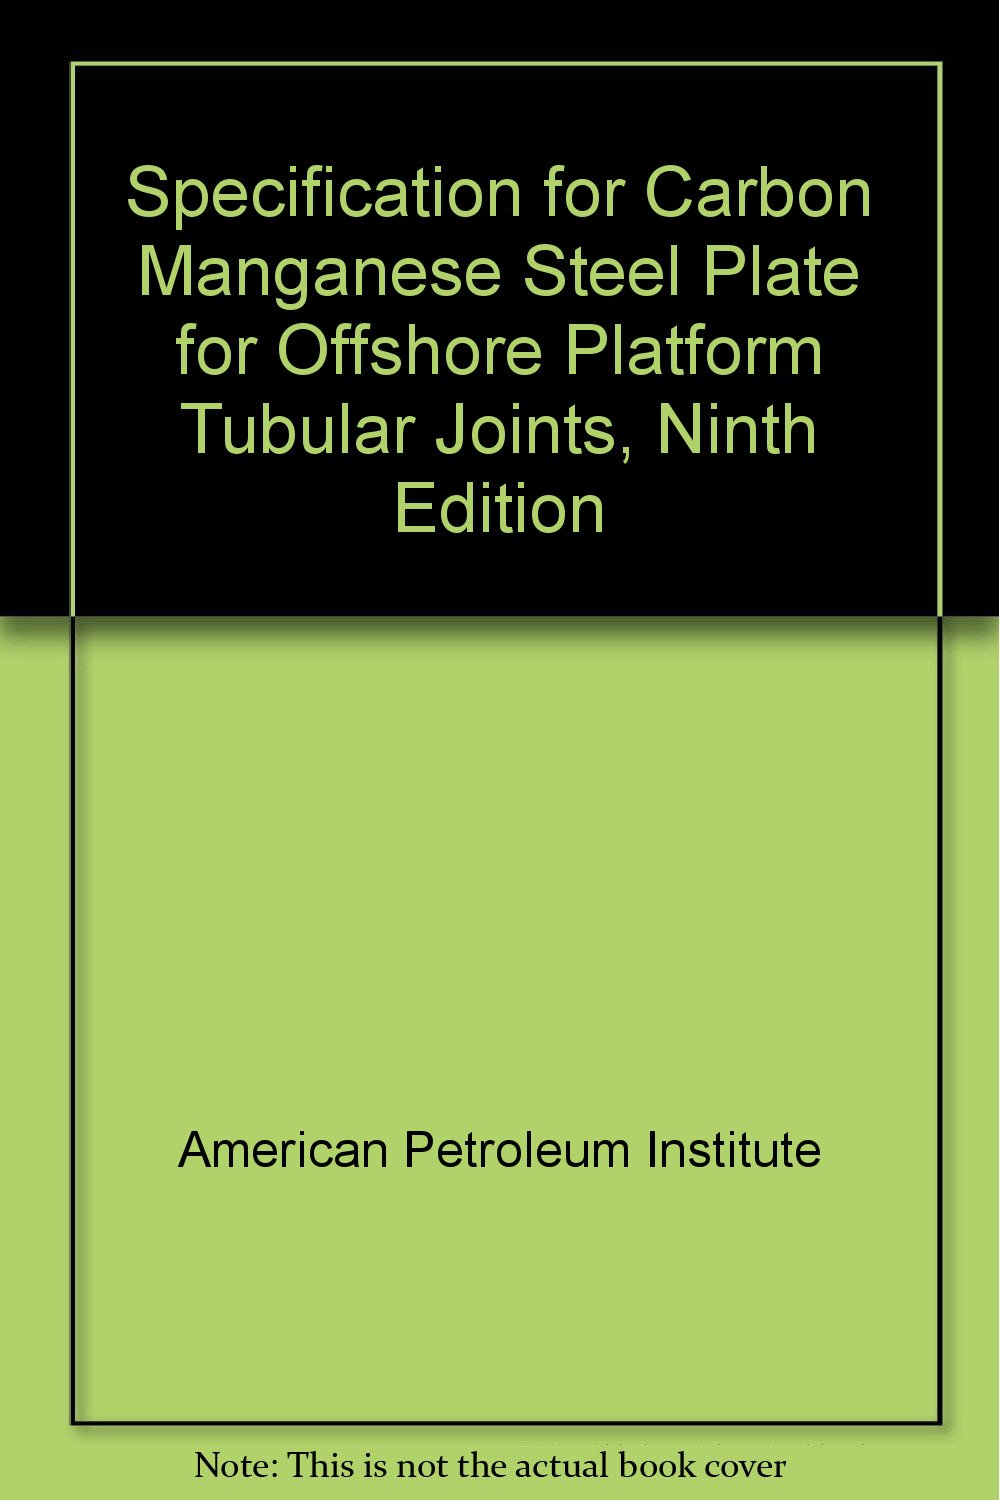 Download Specification for Carbon Manganese Steel Plate for Offshore Platform Tubular Joints, Ninth Edition pdf